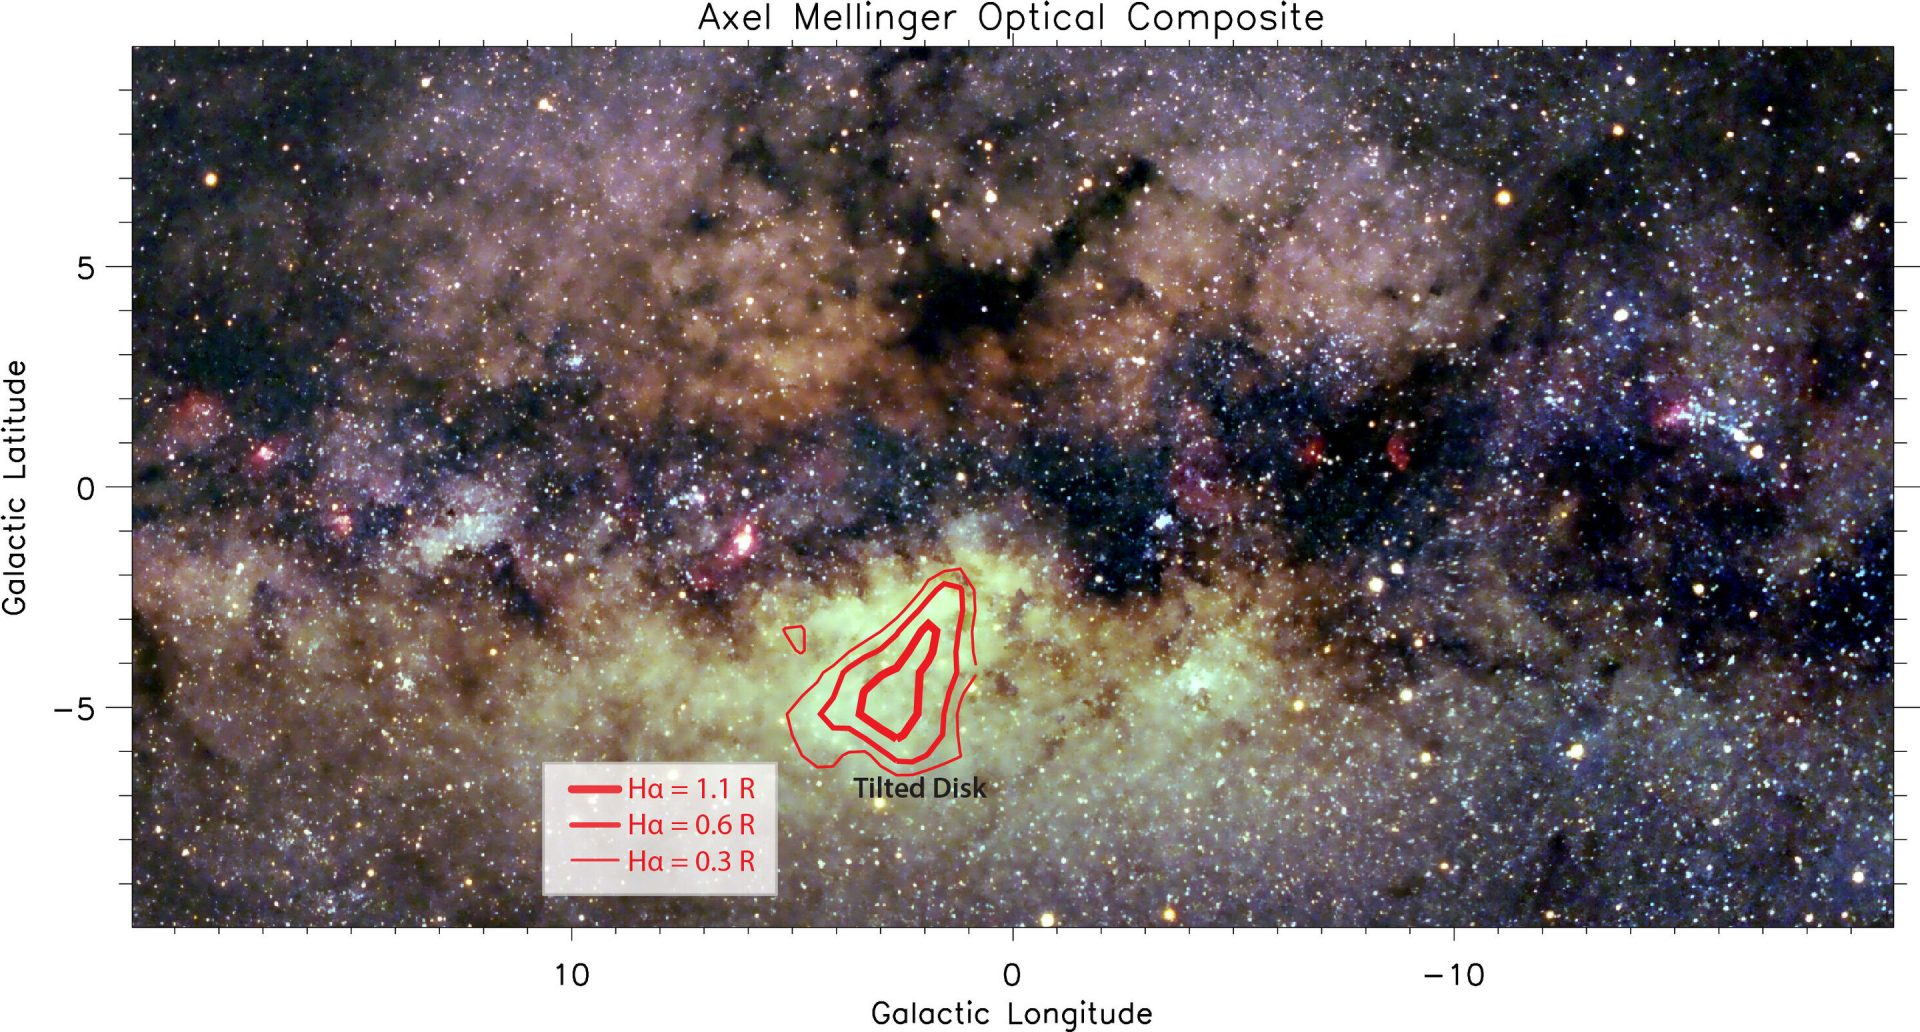 Optical Milky Way image with Hα emission line ratio associated with the Tilted Disk. (Image: Axel Mellinger)